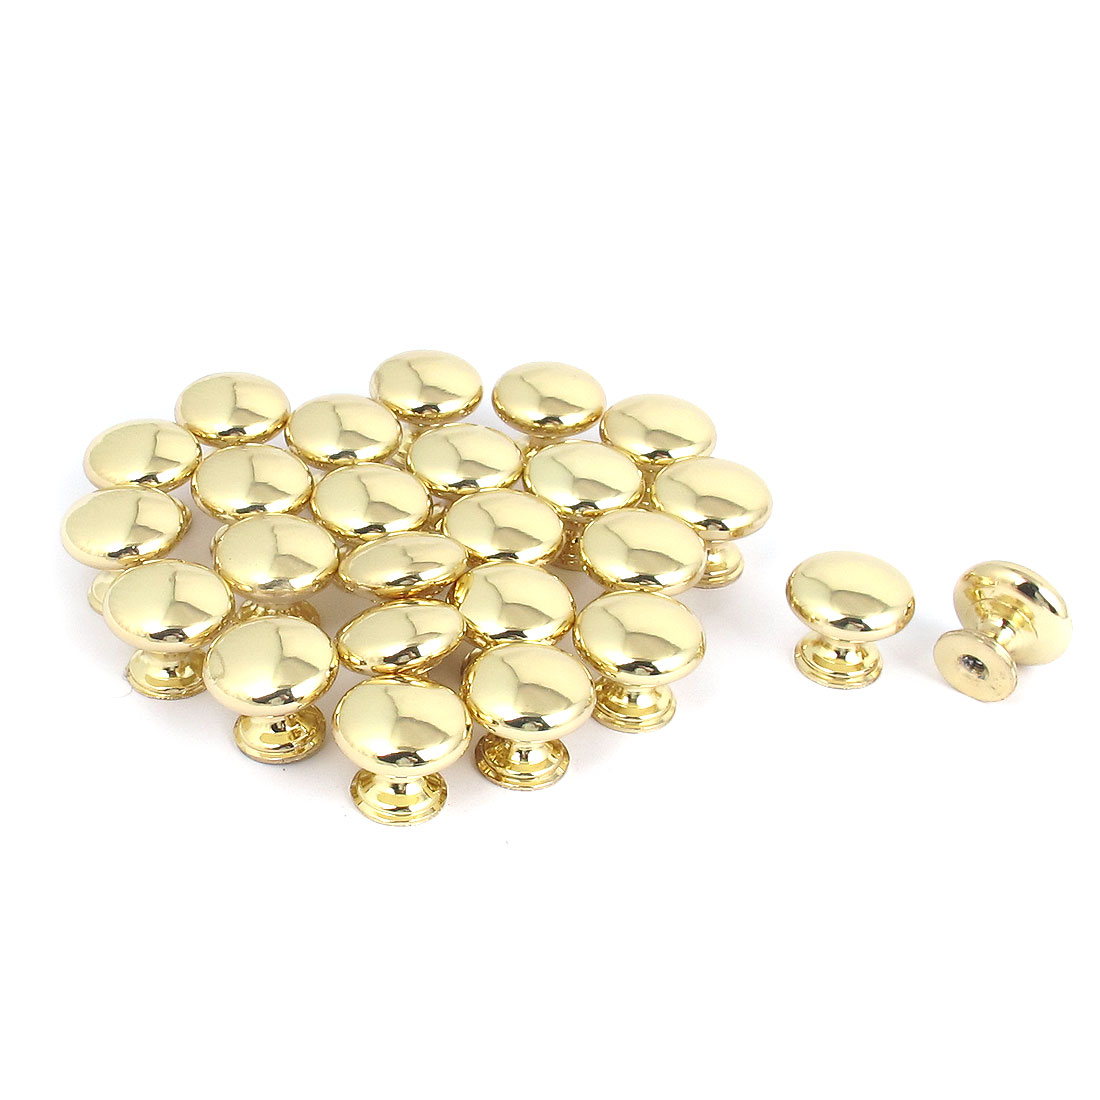 25pcs 25mm x 22mm Metal Round Pull Knob Gold Tone for Cabinet Drawer